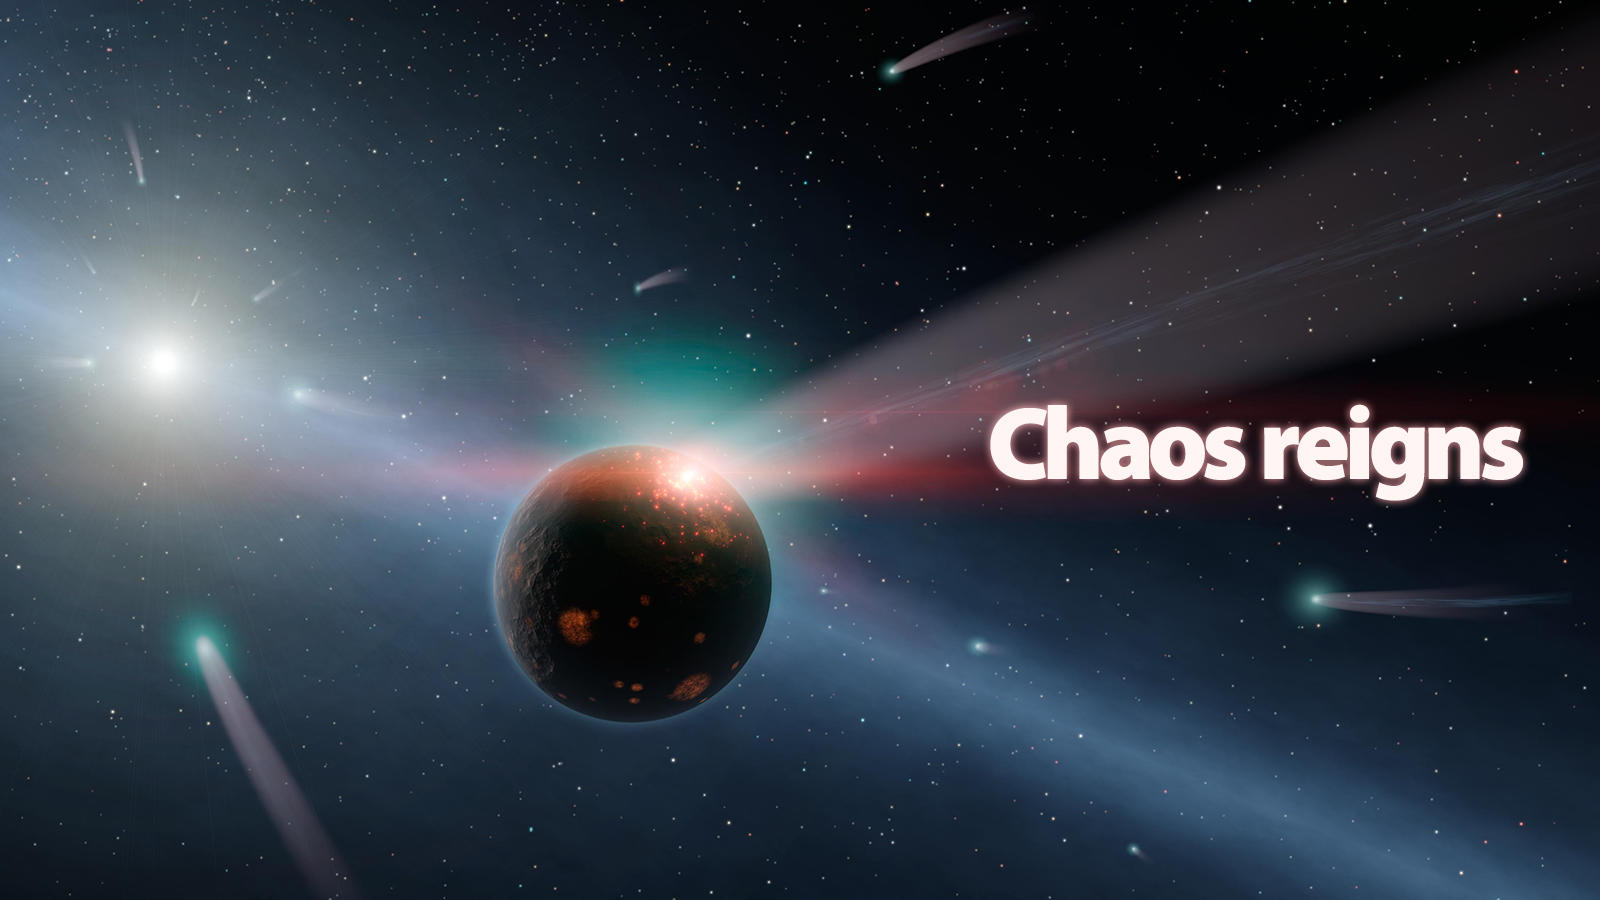 Chaos Reigns.